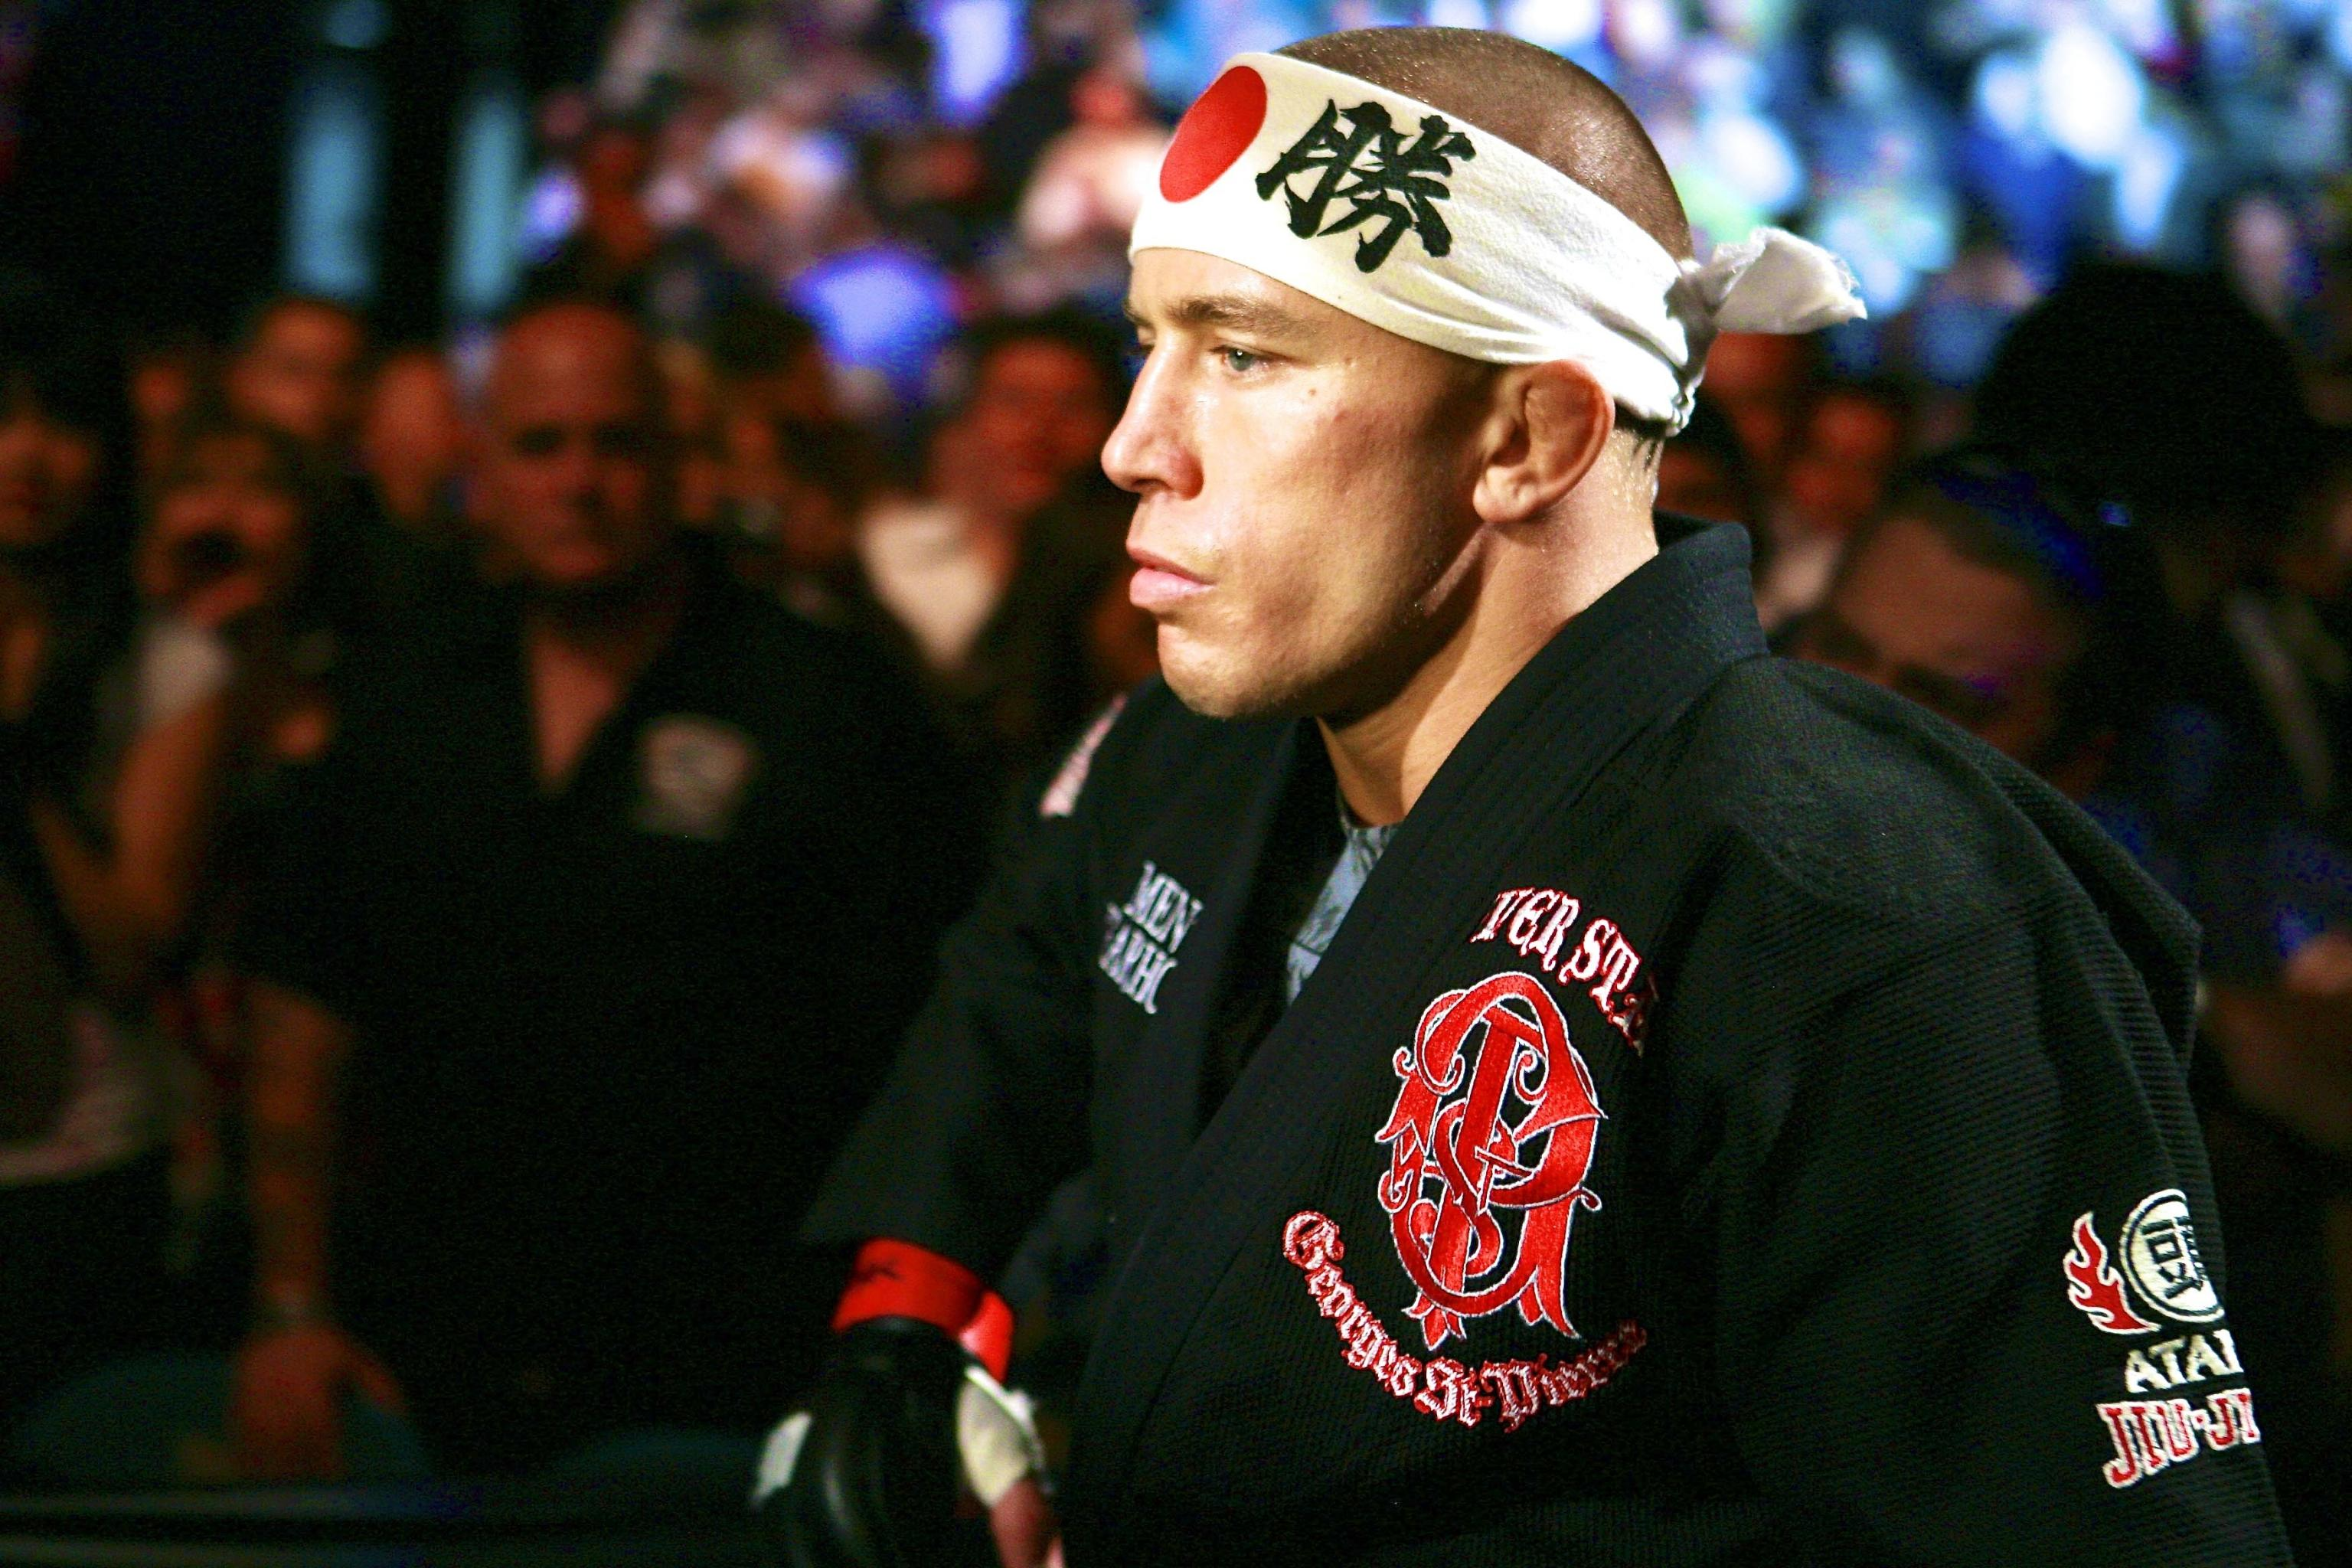 Joe Rogan Reveals That Georges St Pierre Was Making 5 Million A Fight Bleacher Report Latest News Videos And Highlights